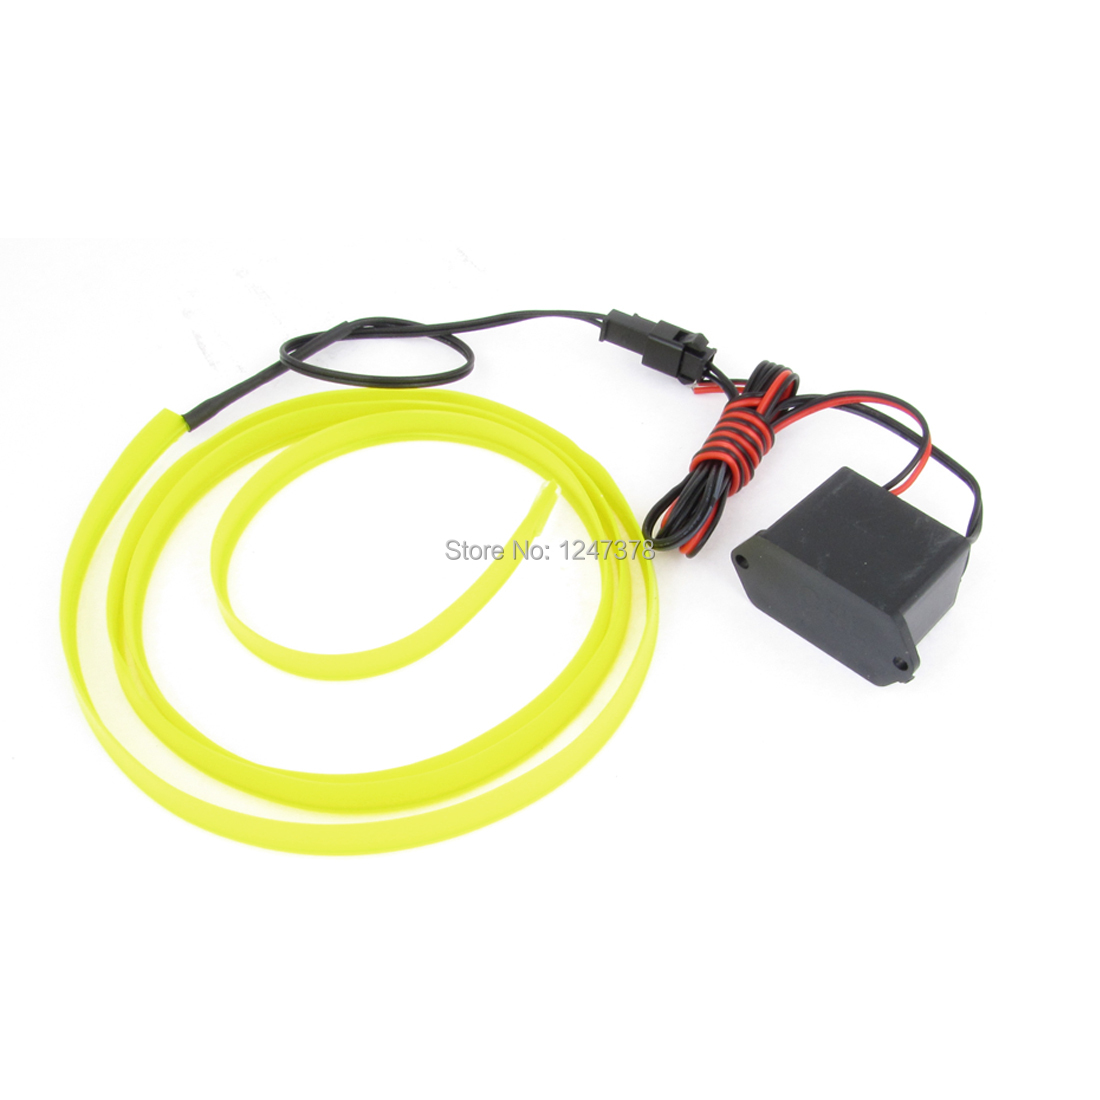 1 Meter Long 8mm Width Plastic Yellowgreen EL Wire Neon Light Rope for Car 1 Piece Decoration Discount 50(China (Mainland))